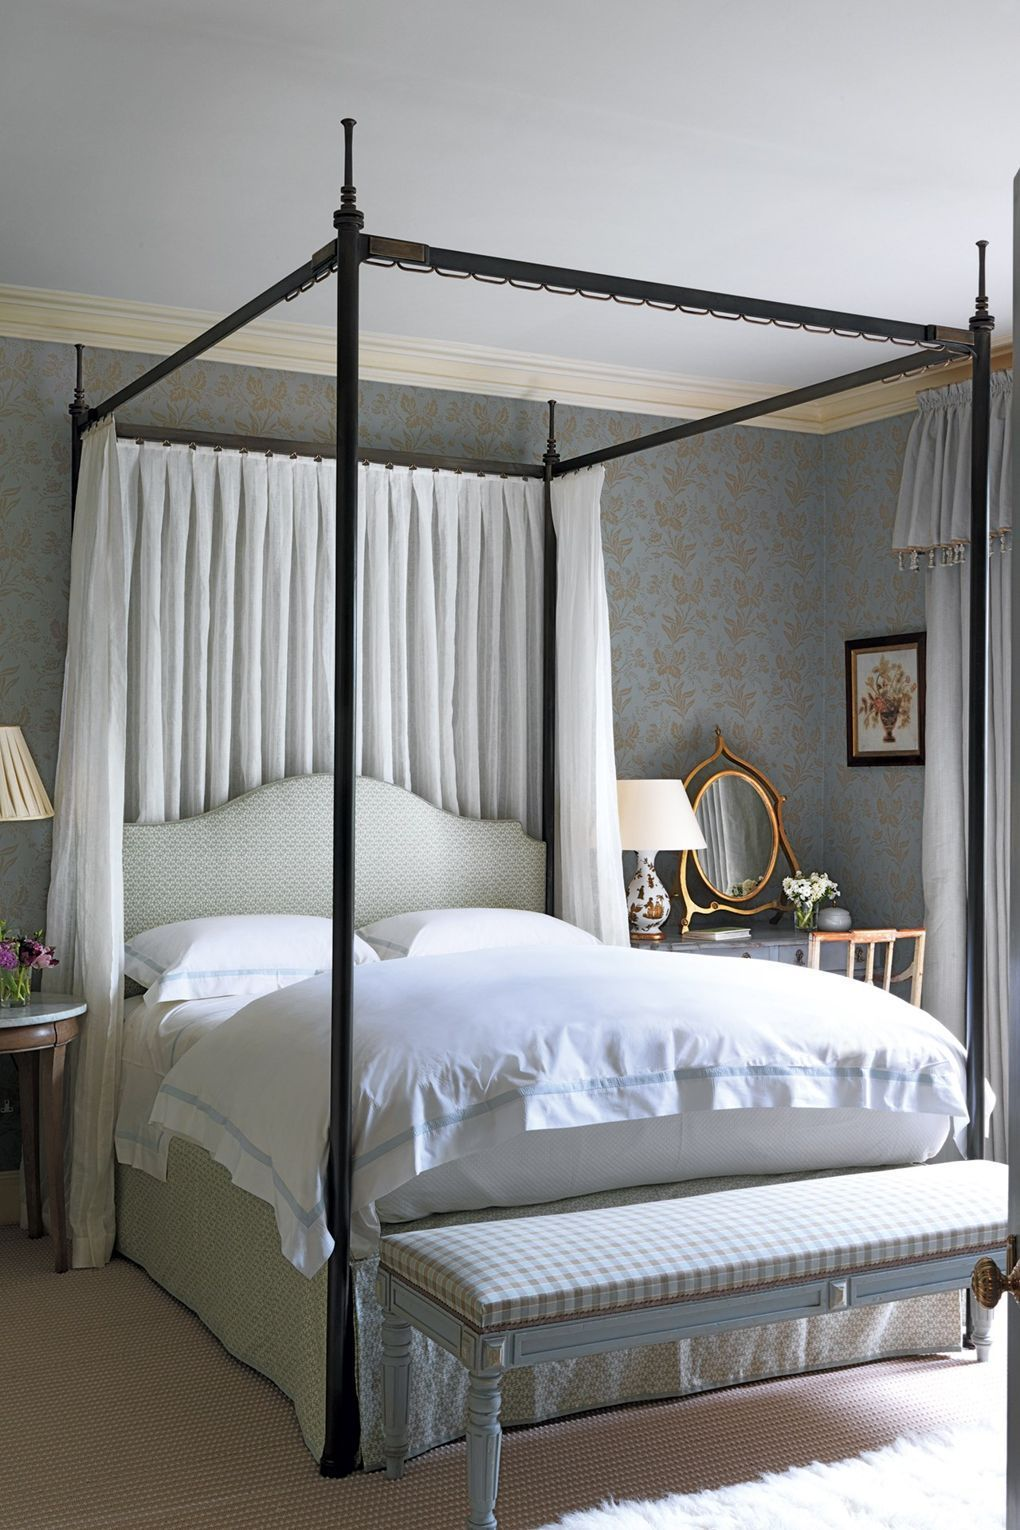 The four poster bed in the main bedroom